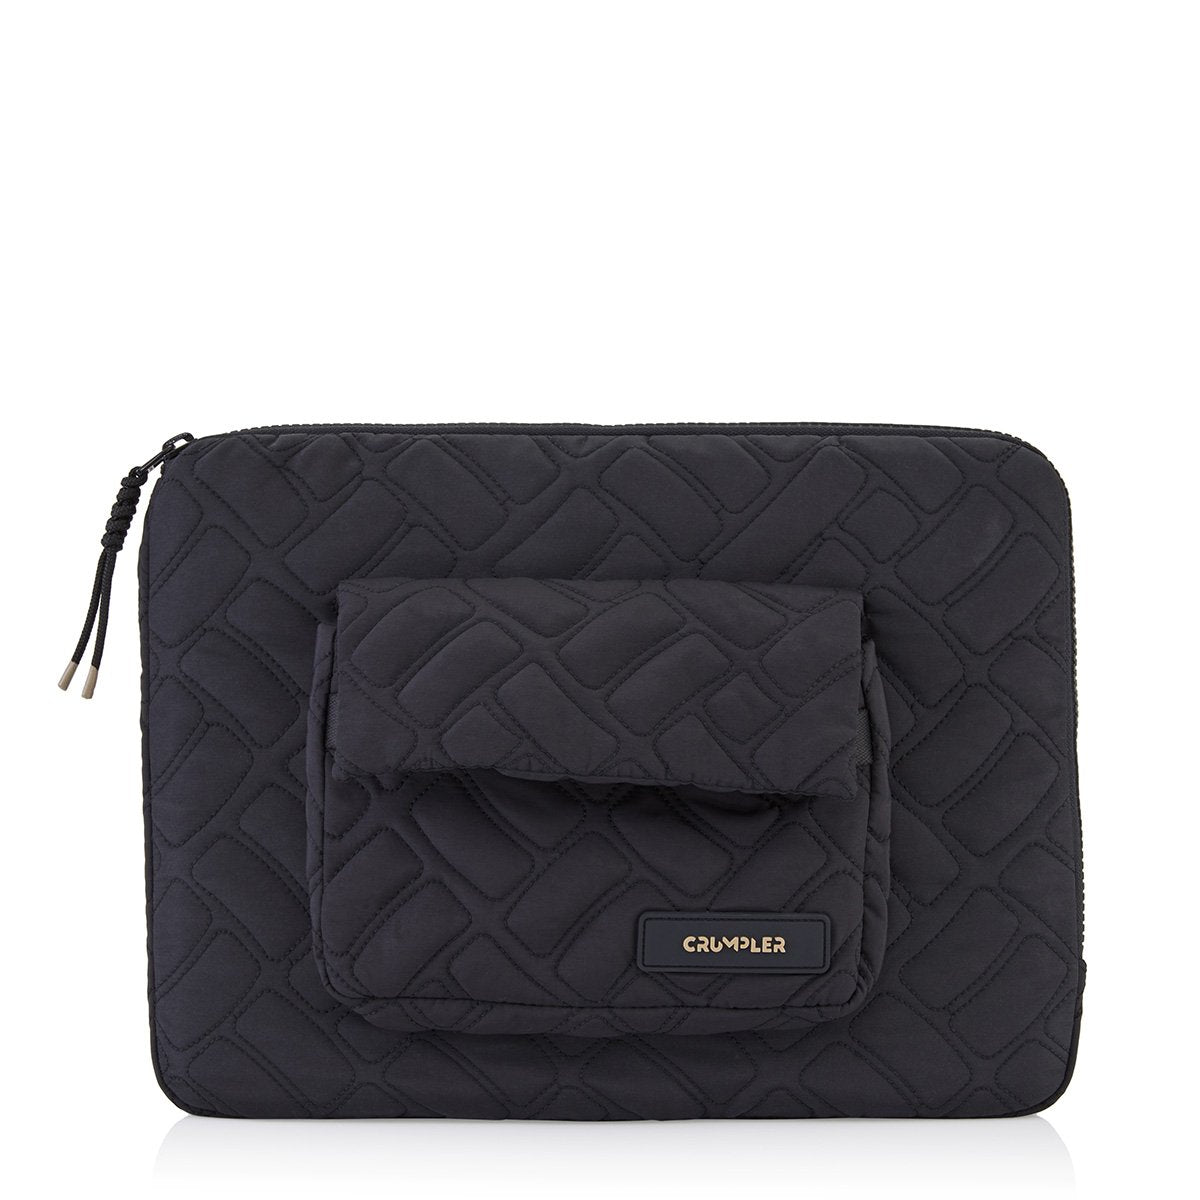 crumpler daily mission 15'' laptop sleeve black